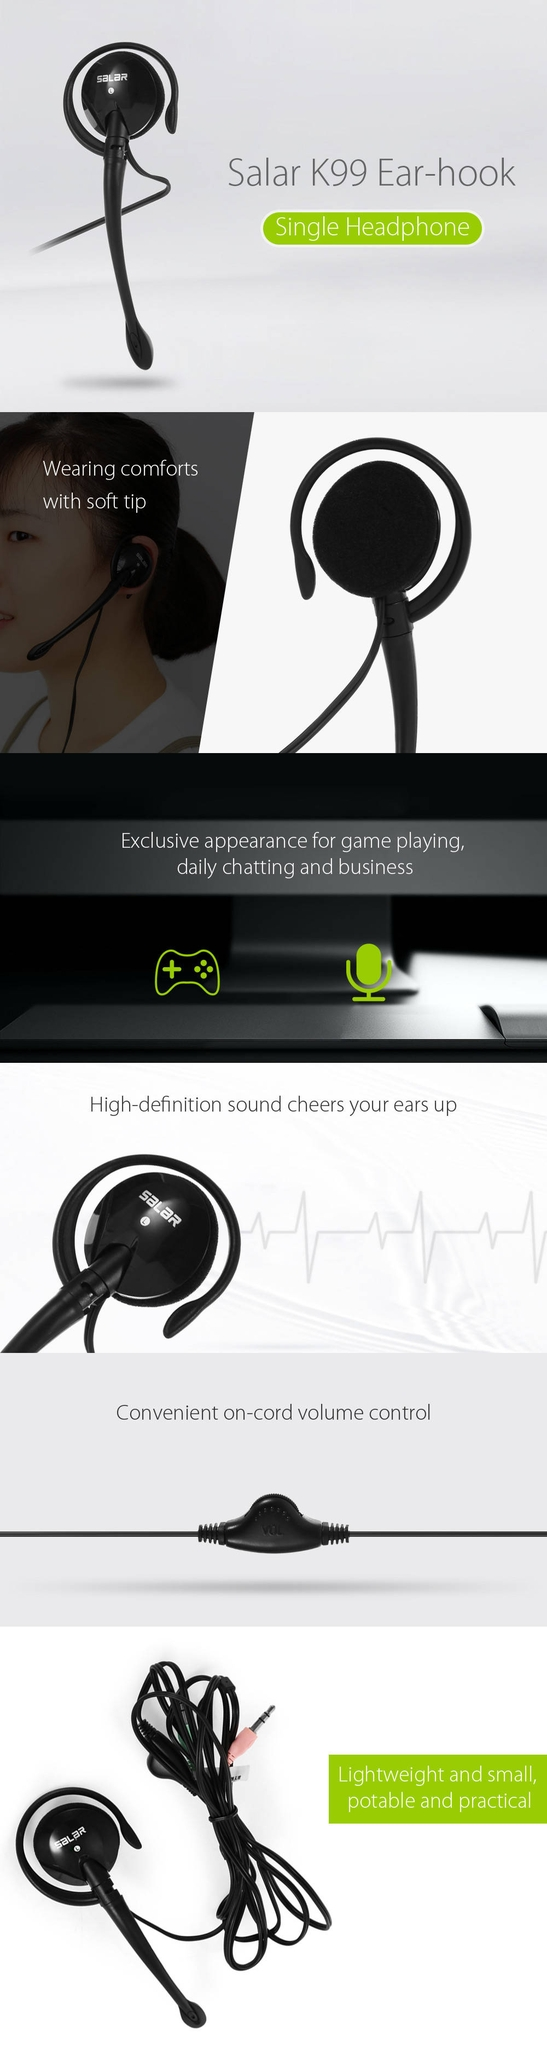 Salar K99 Ear-hook Headset for Business